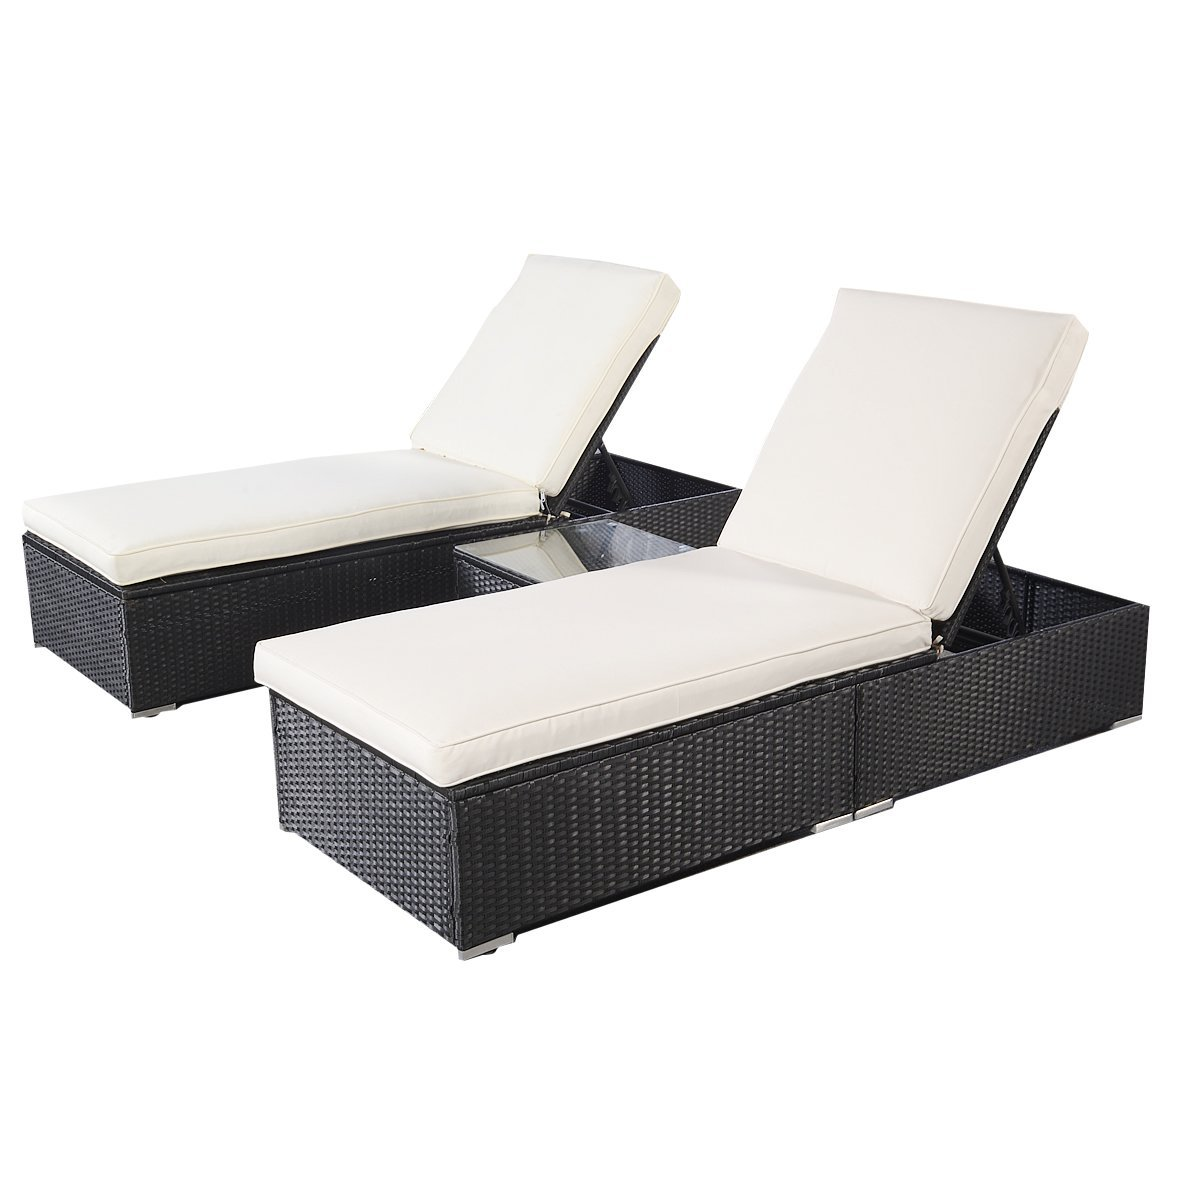 Wicker outdoor furniture pool chaise lounge chair with for Black outdoor wicker chaise